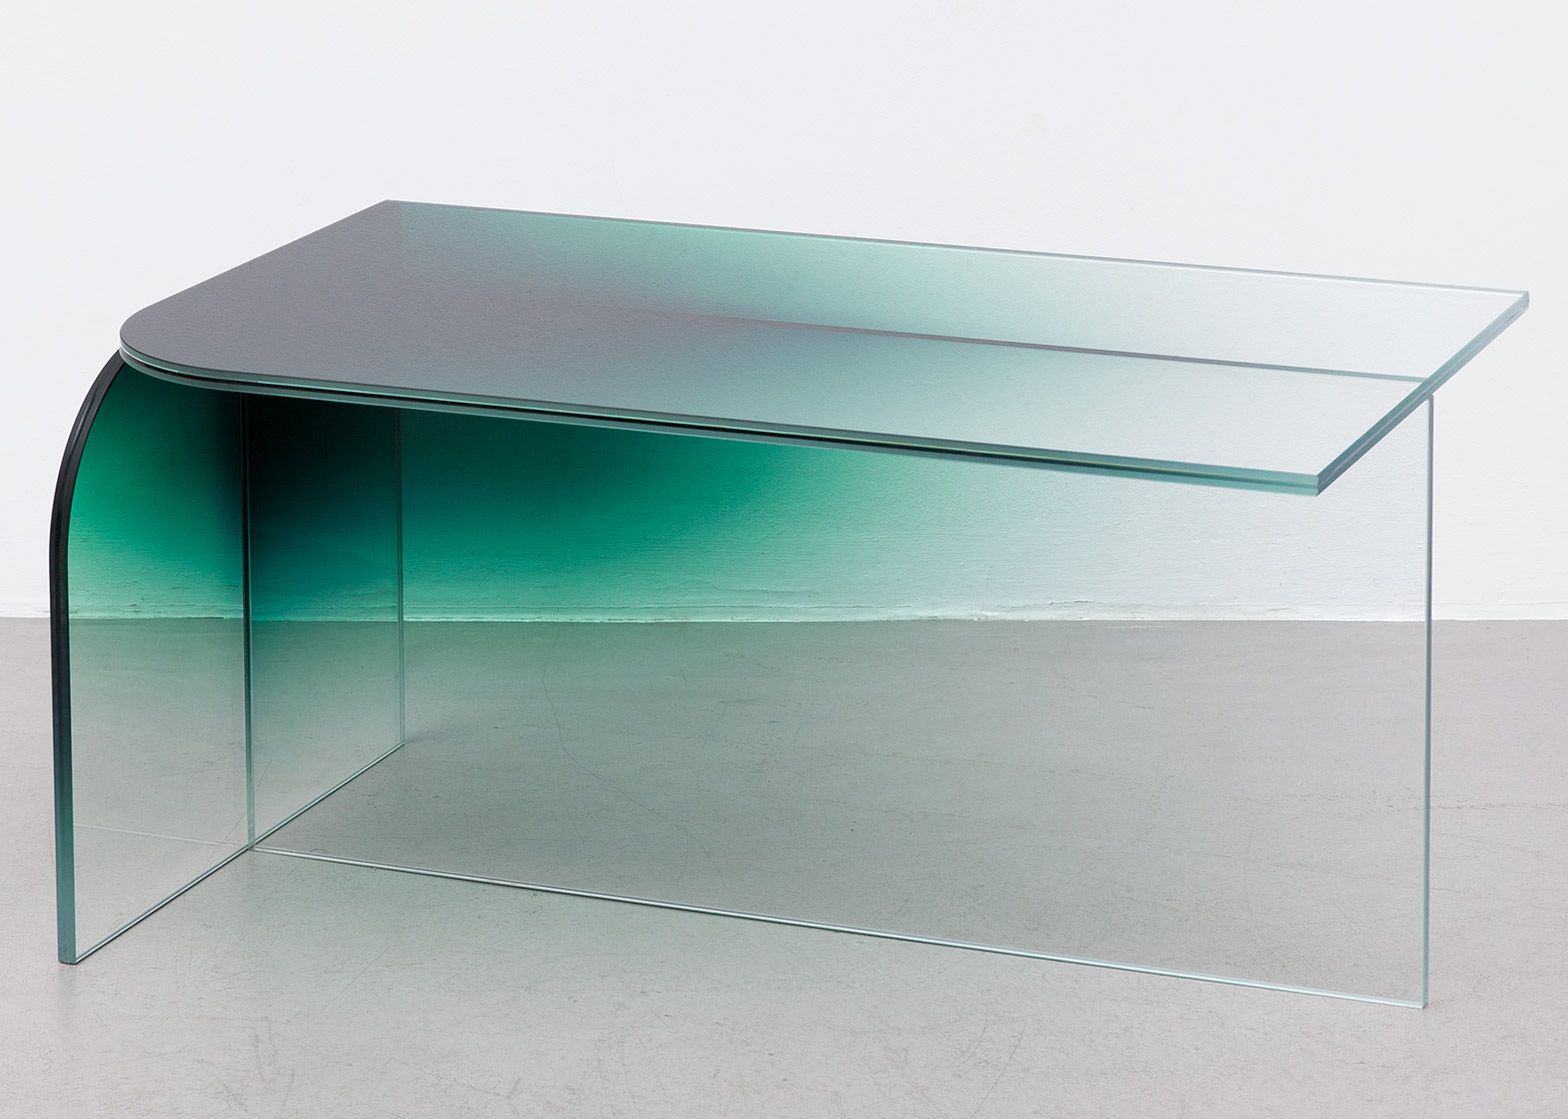 images about Glass furniture on Pinterest Furniture